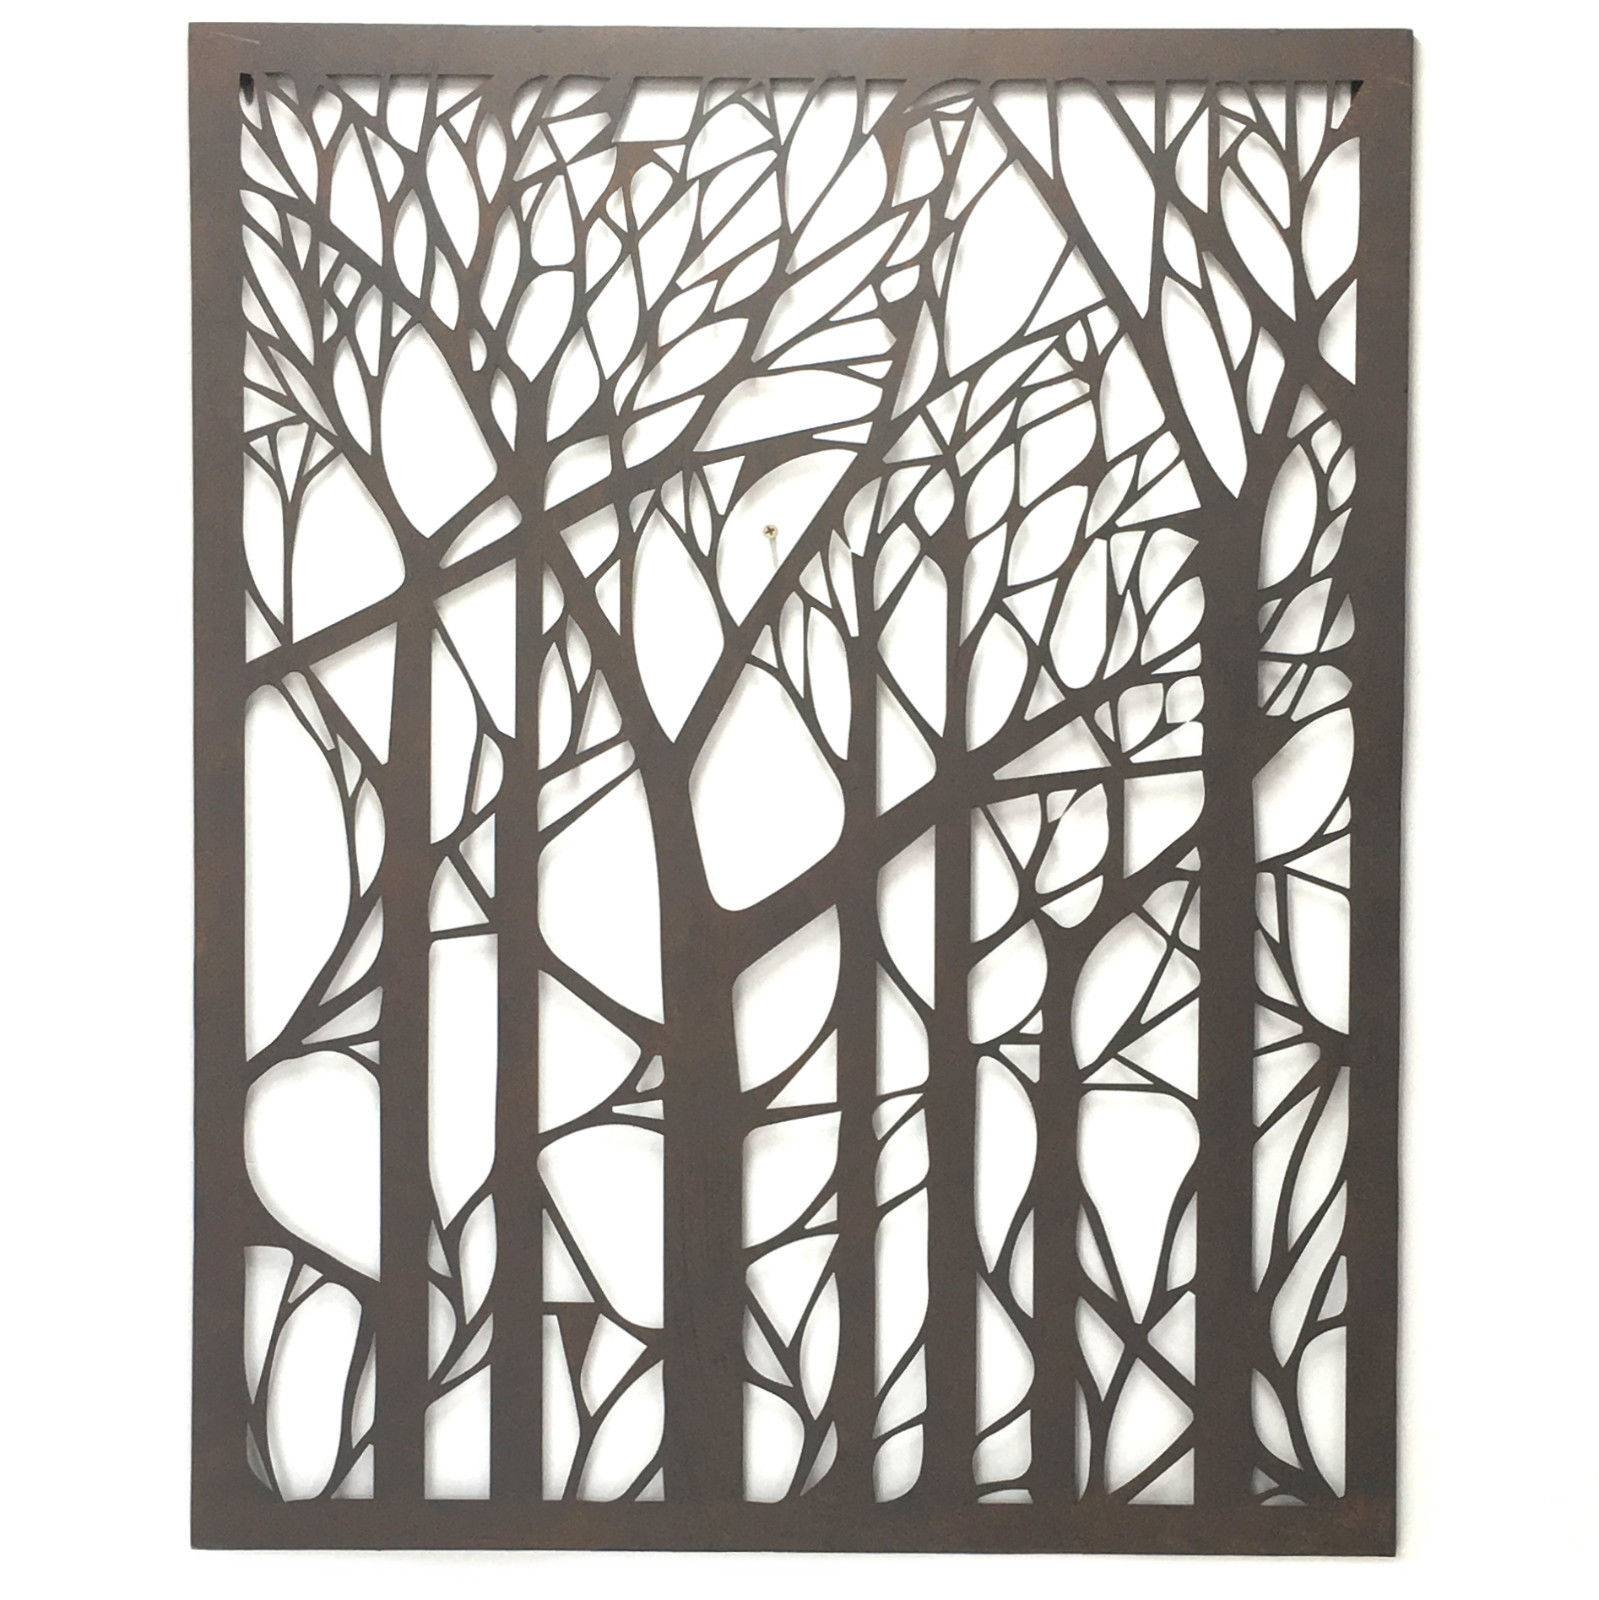 Wall Art Designs: Outdoor Wall Art Metal Tree Metal Wall Art With Regard To Current Branches Metal Wall Art (View 18 of 20)